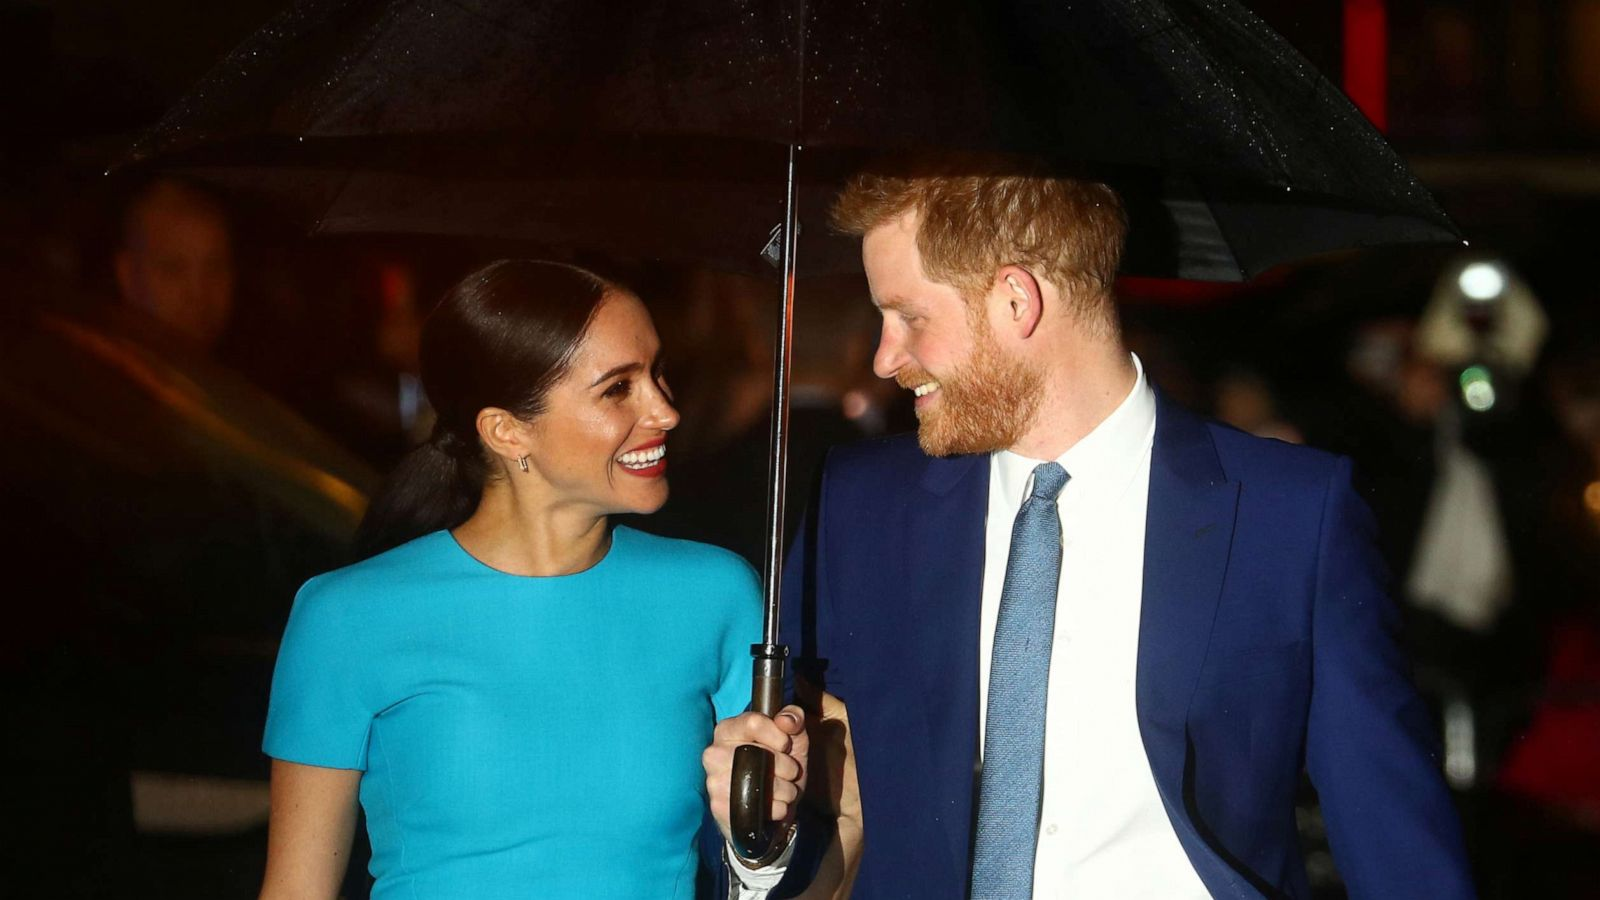 prince harry and duchess meghan are financially independent repay 3m frogmore cottage home renovation costs gma prince harry and duchess meghan are